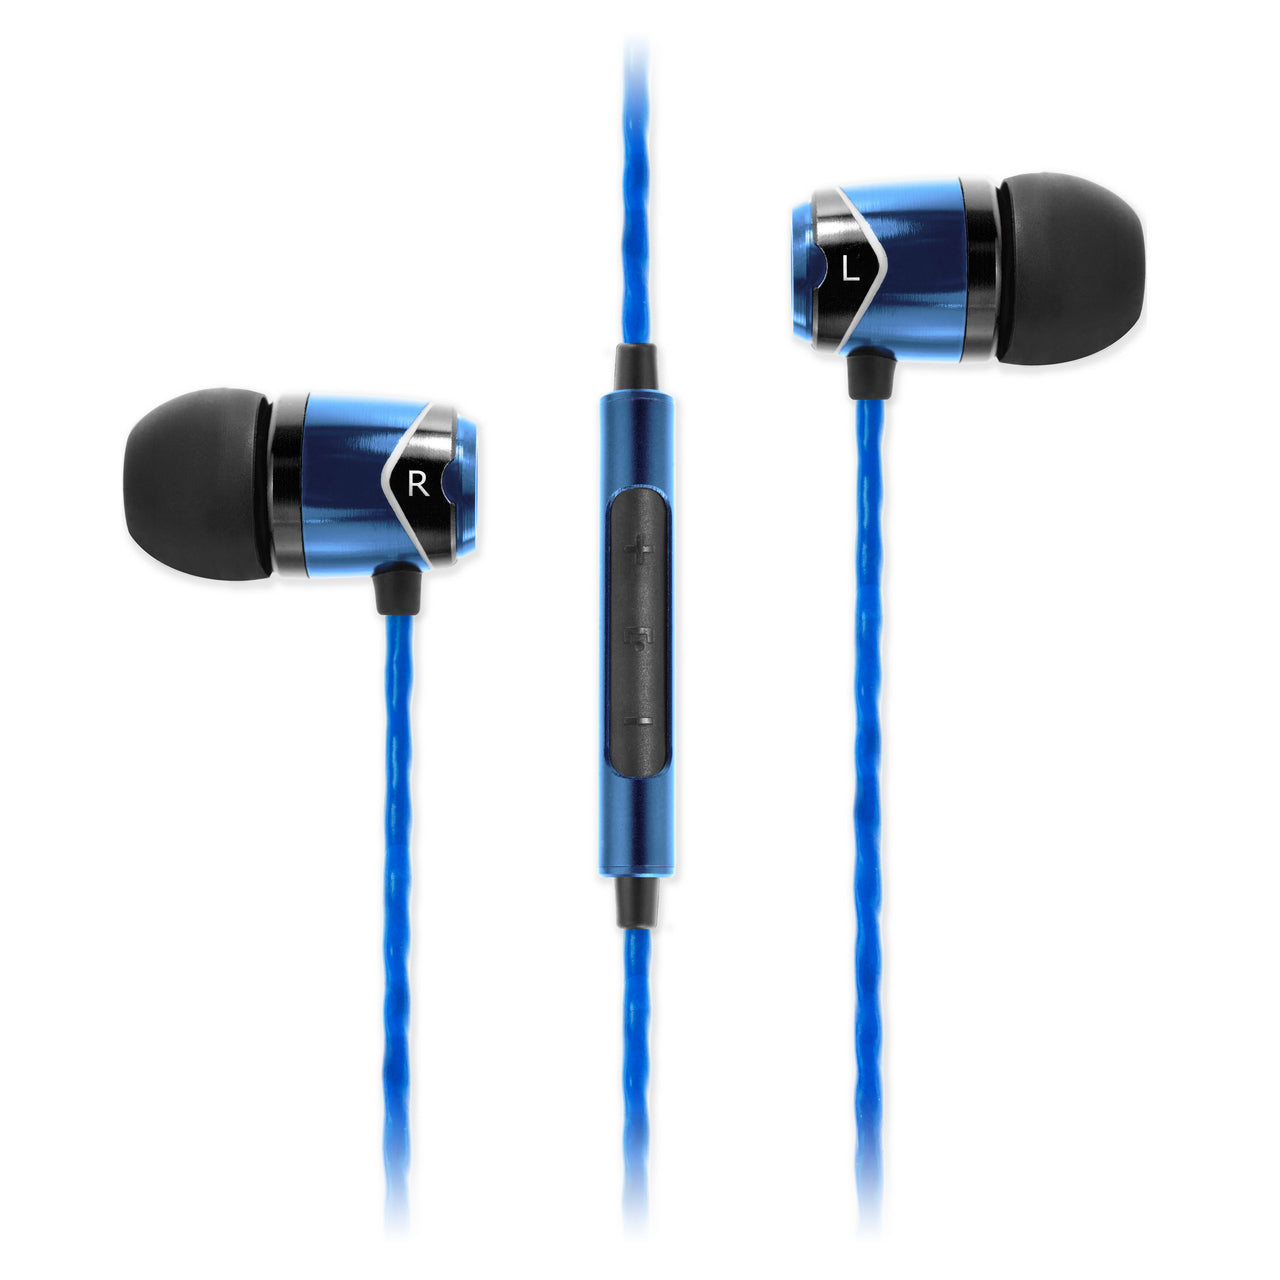 SOUNDMAGIC E10C IN EAR ISOLATING EARPHONES WITH MIC, BLUE - Refurbished